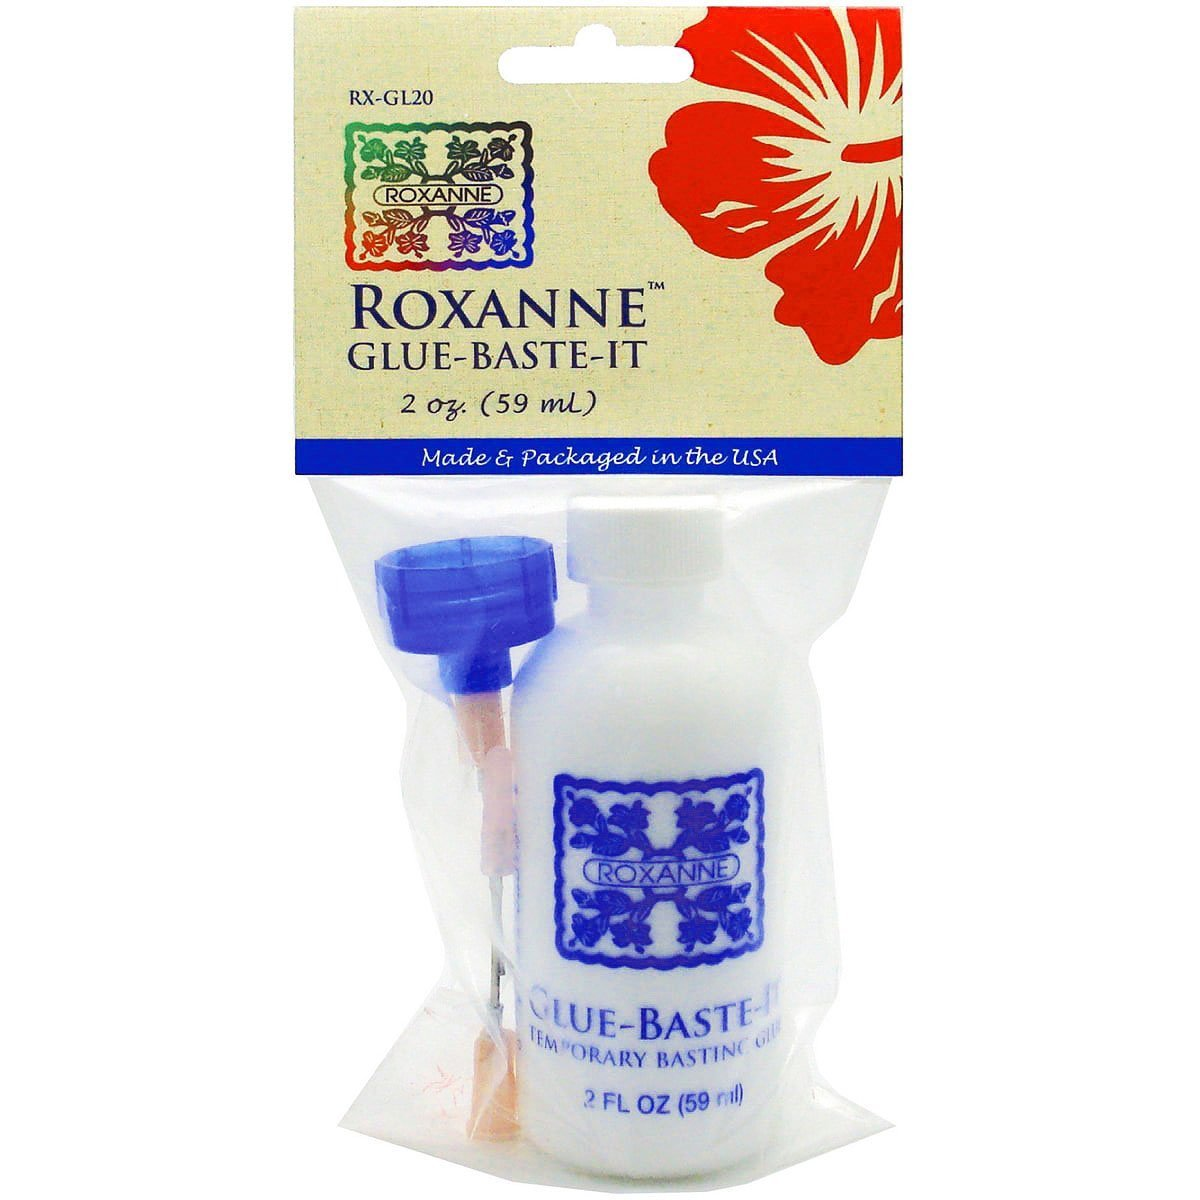 Roxanne - Glue-Baste-It (59ml)